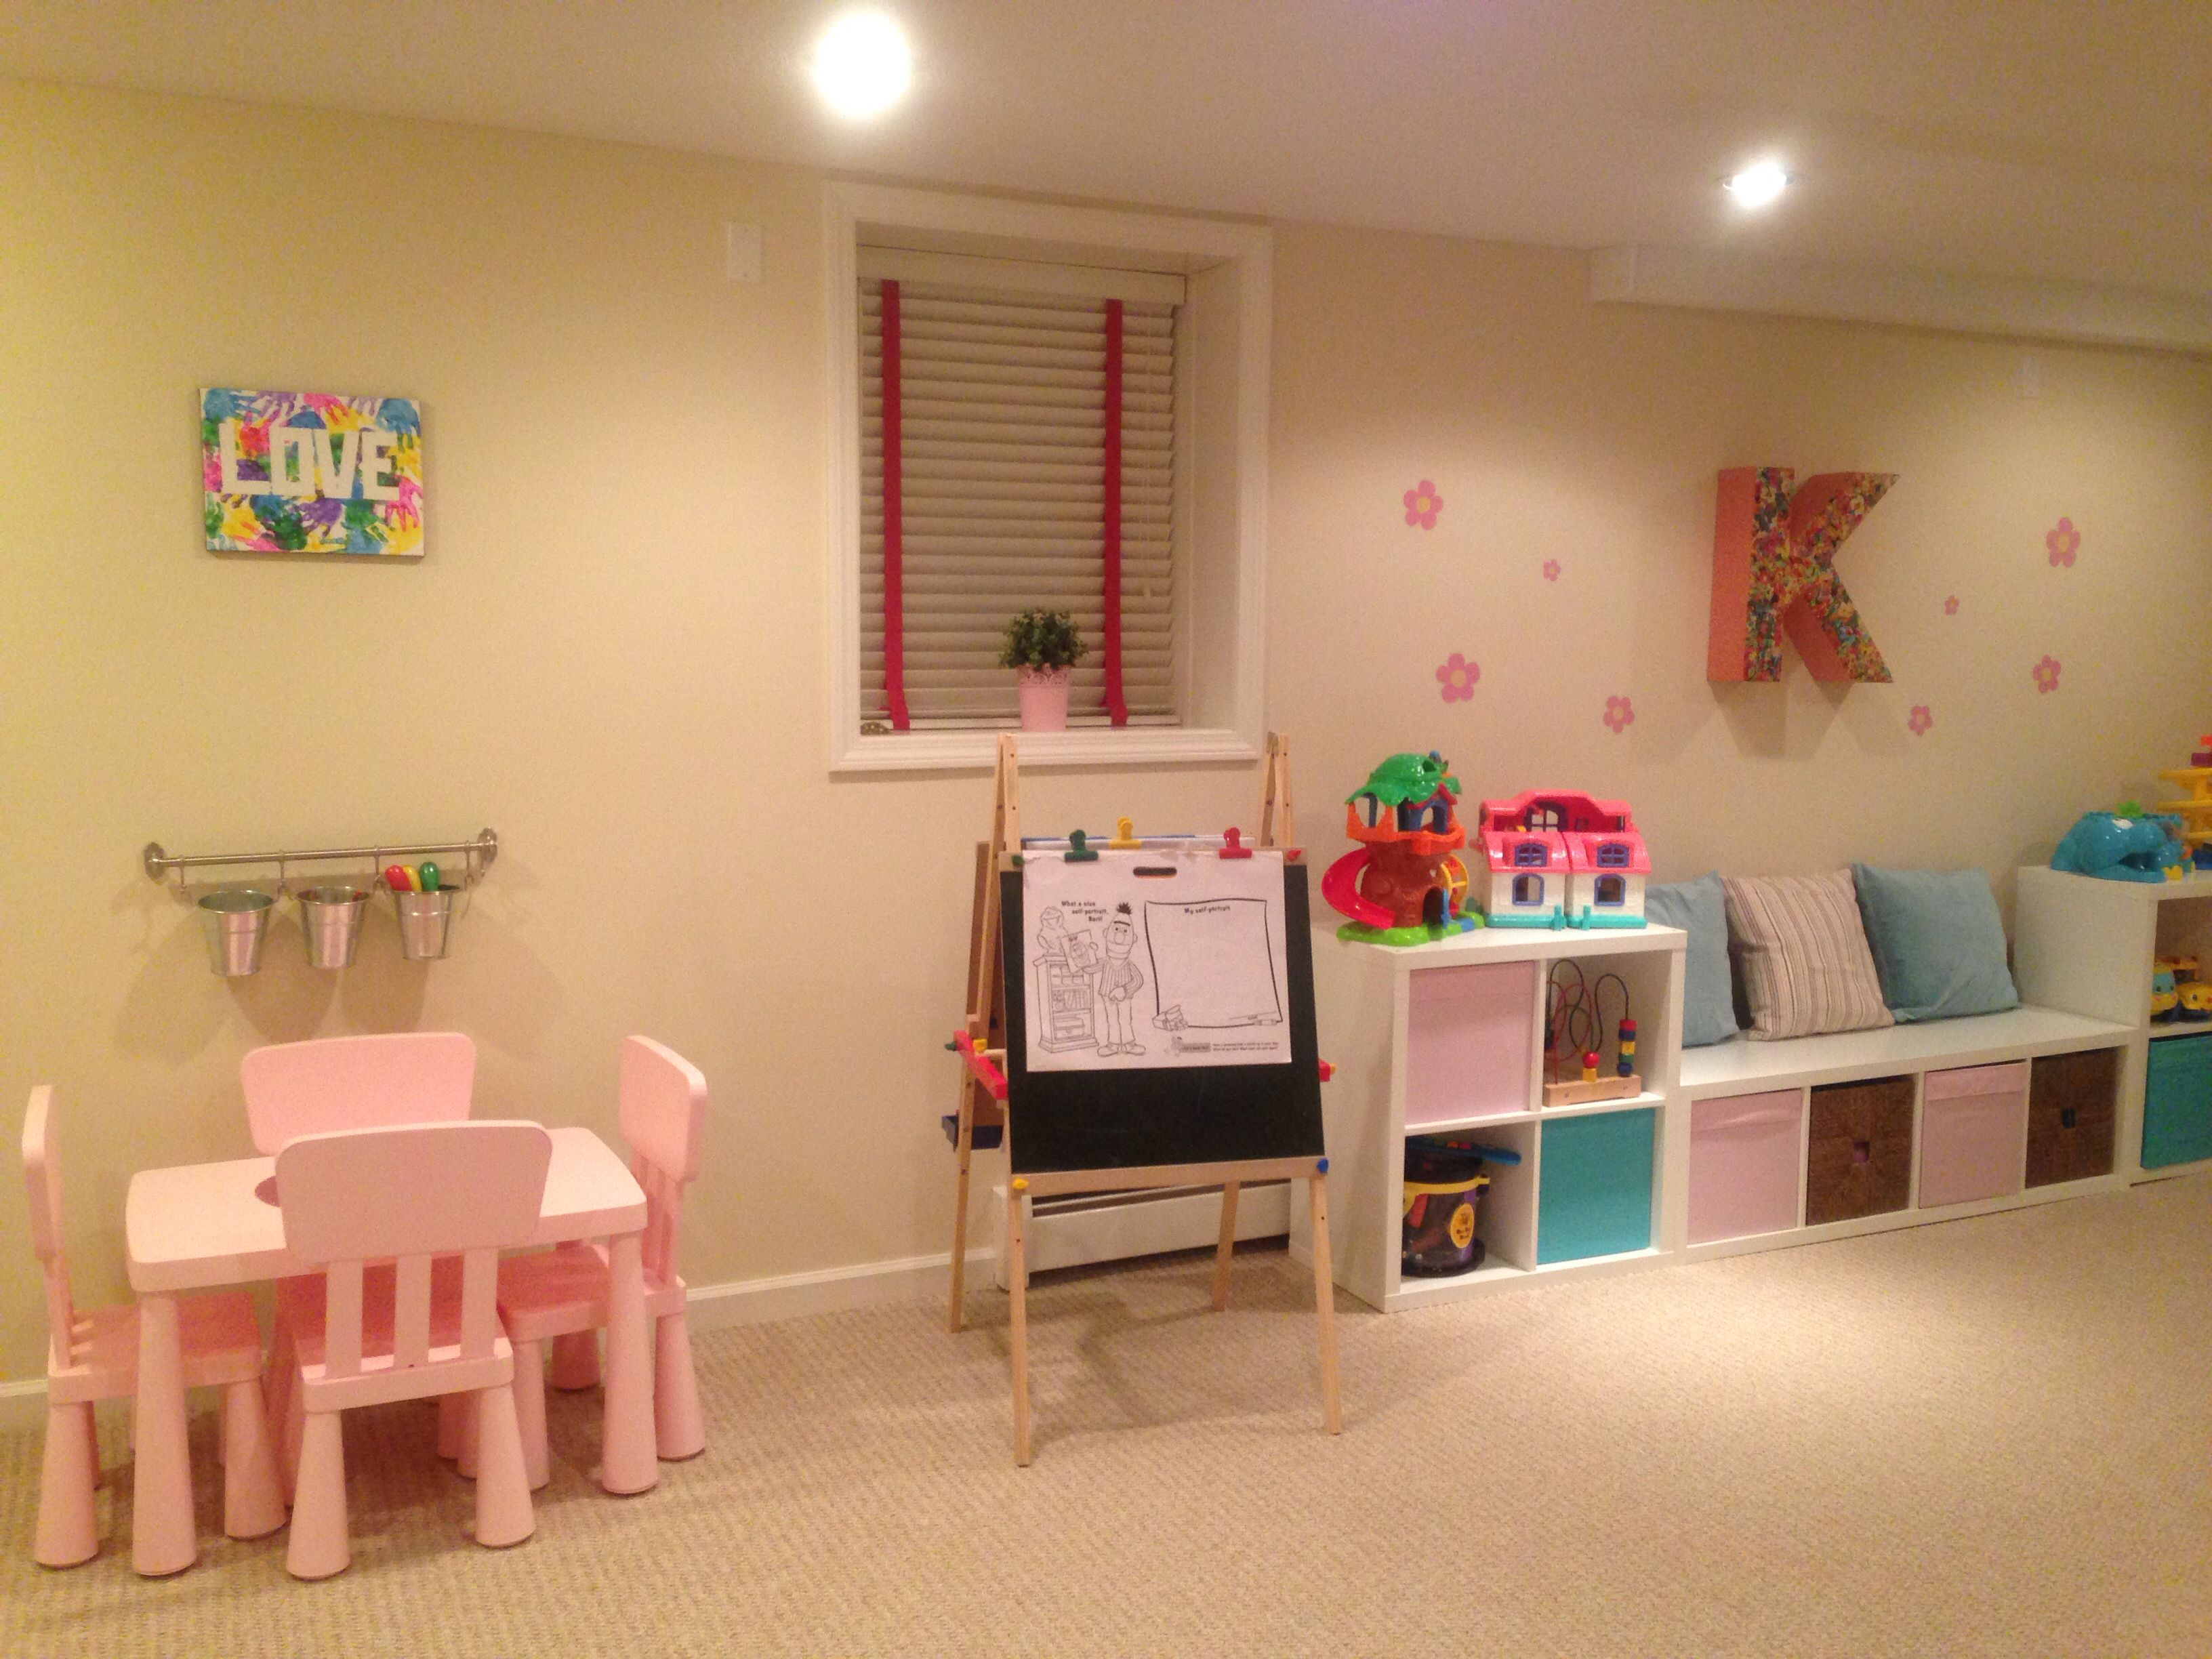 US - Furniture and Home Furnishings | Playroom, Room, Kids ...